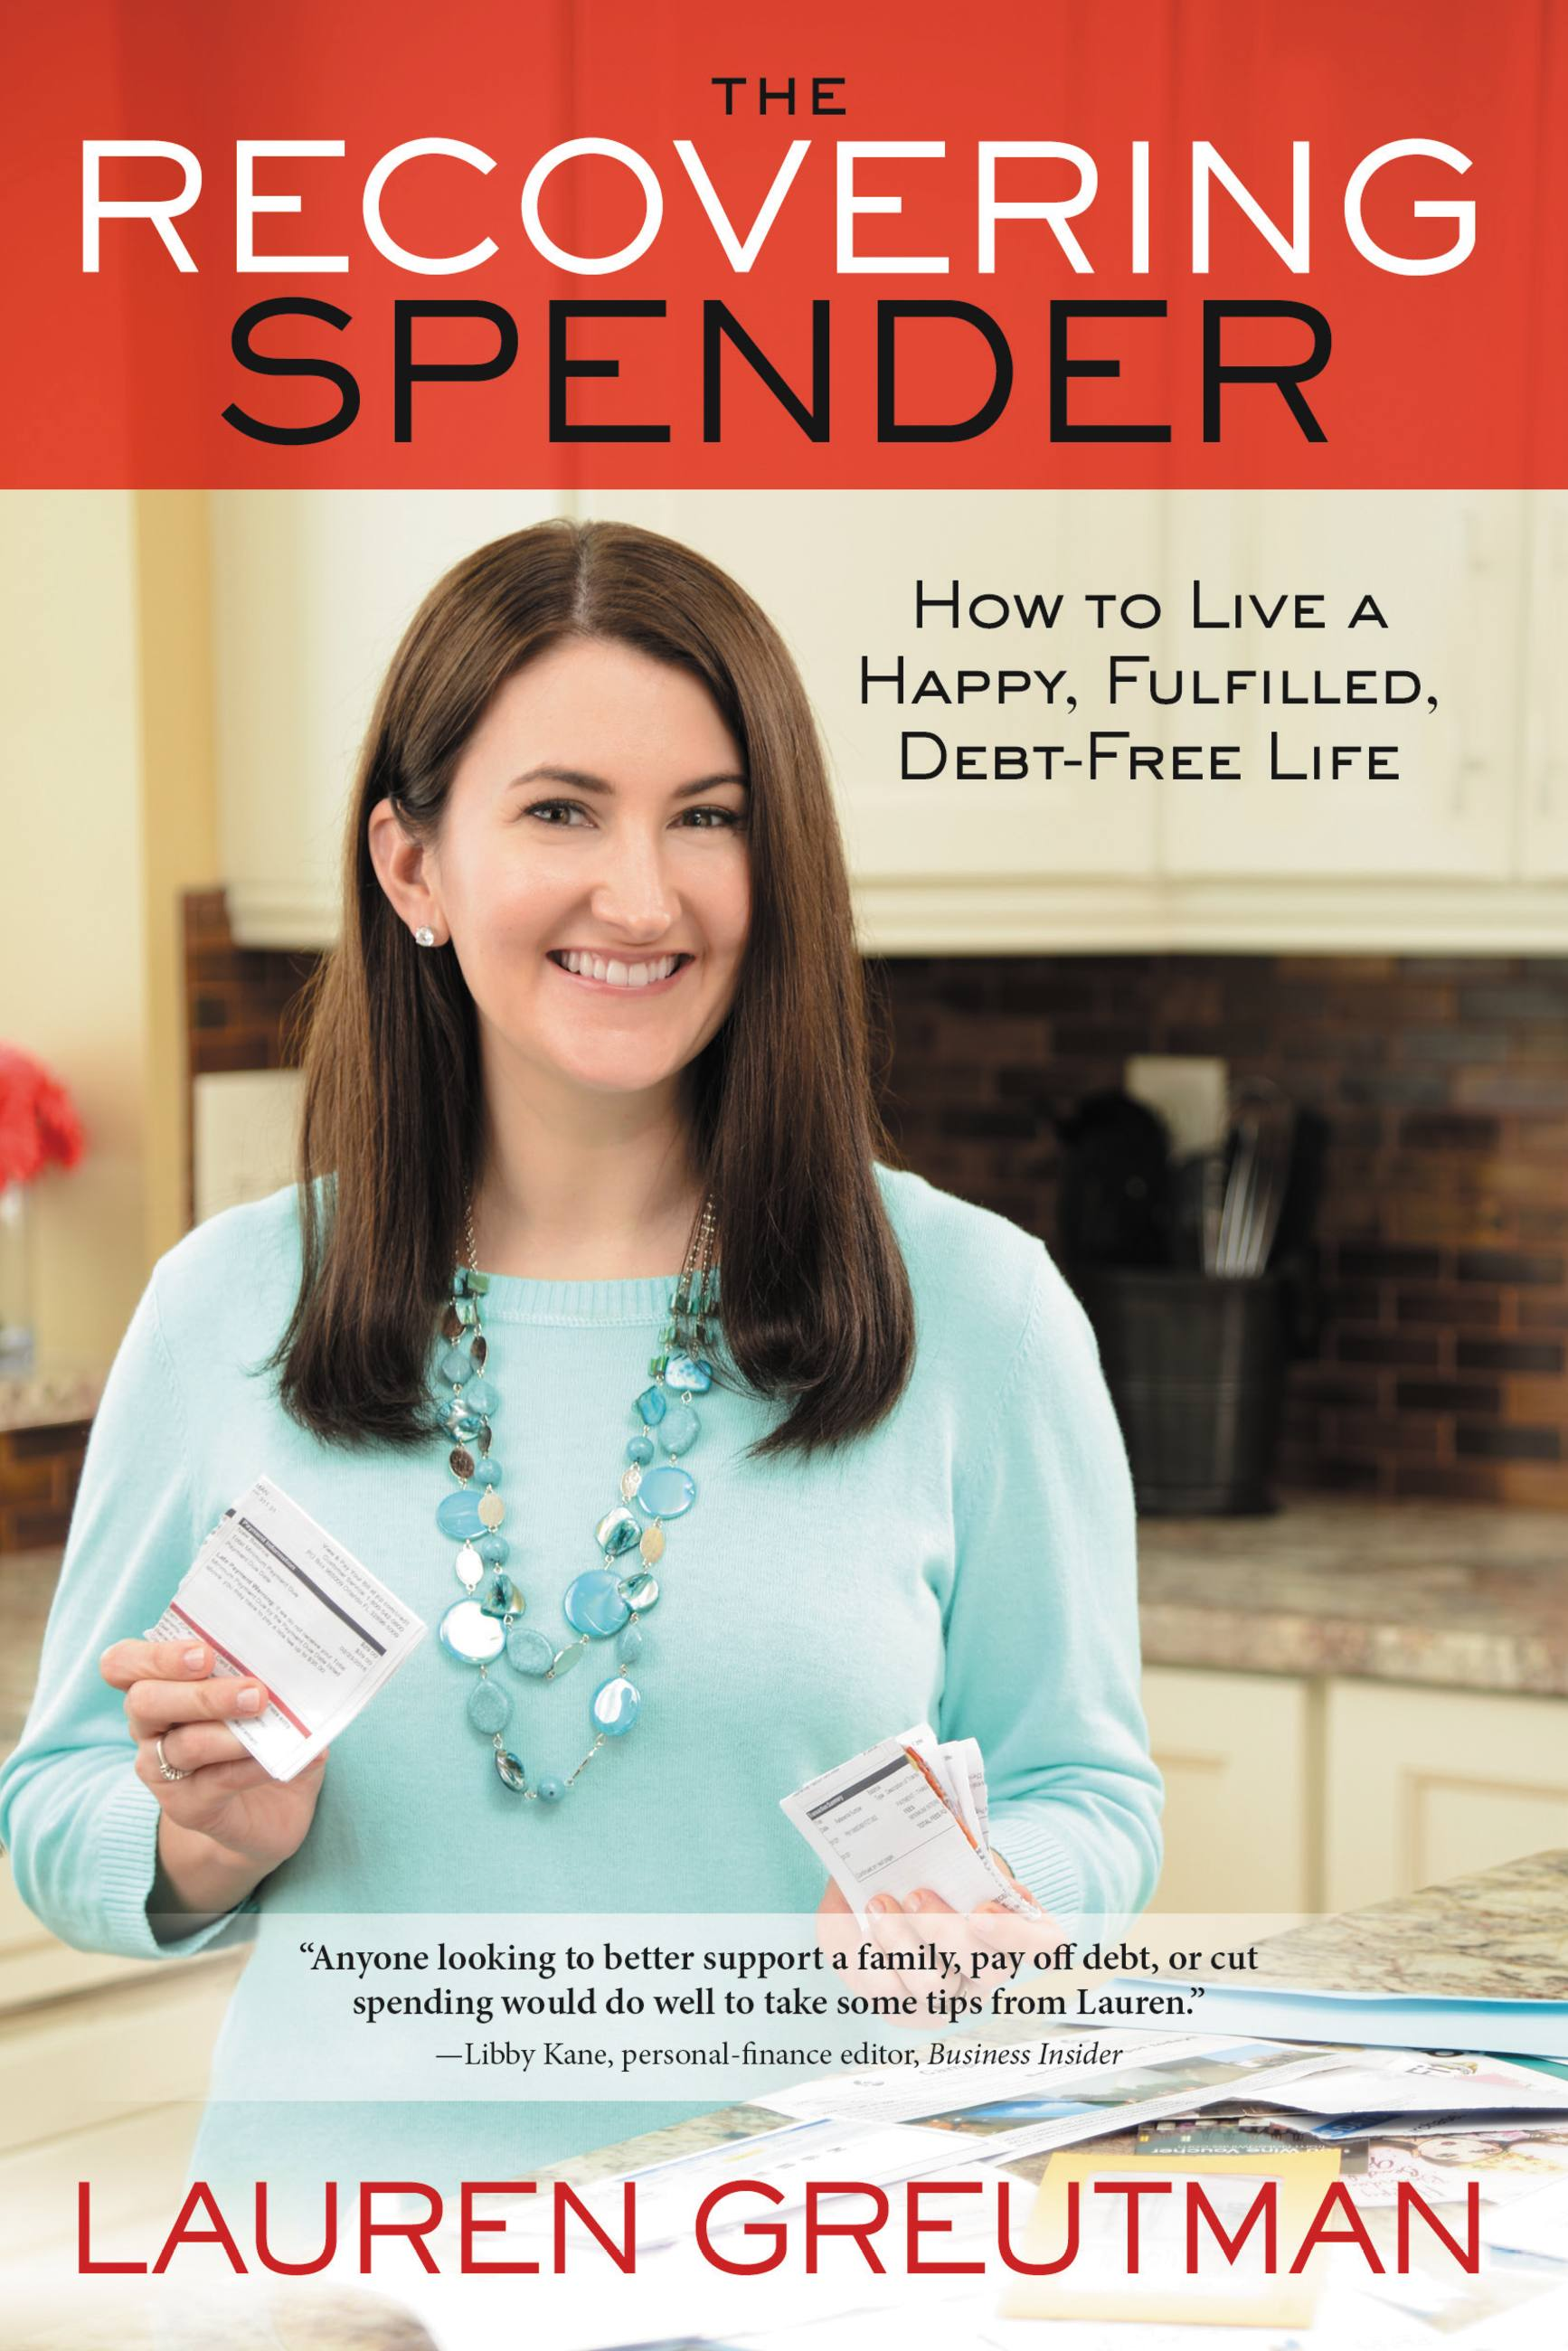 The Recovering Spender How to Live a Happy, Fulfilled, Debt-Free Life